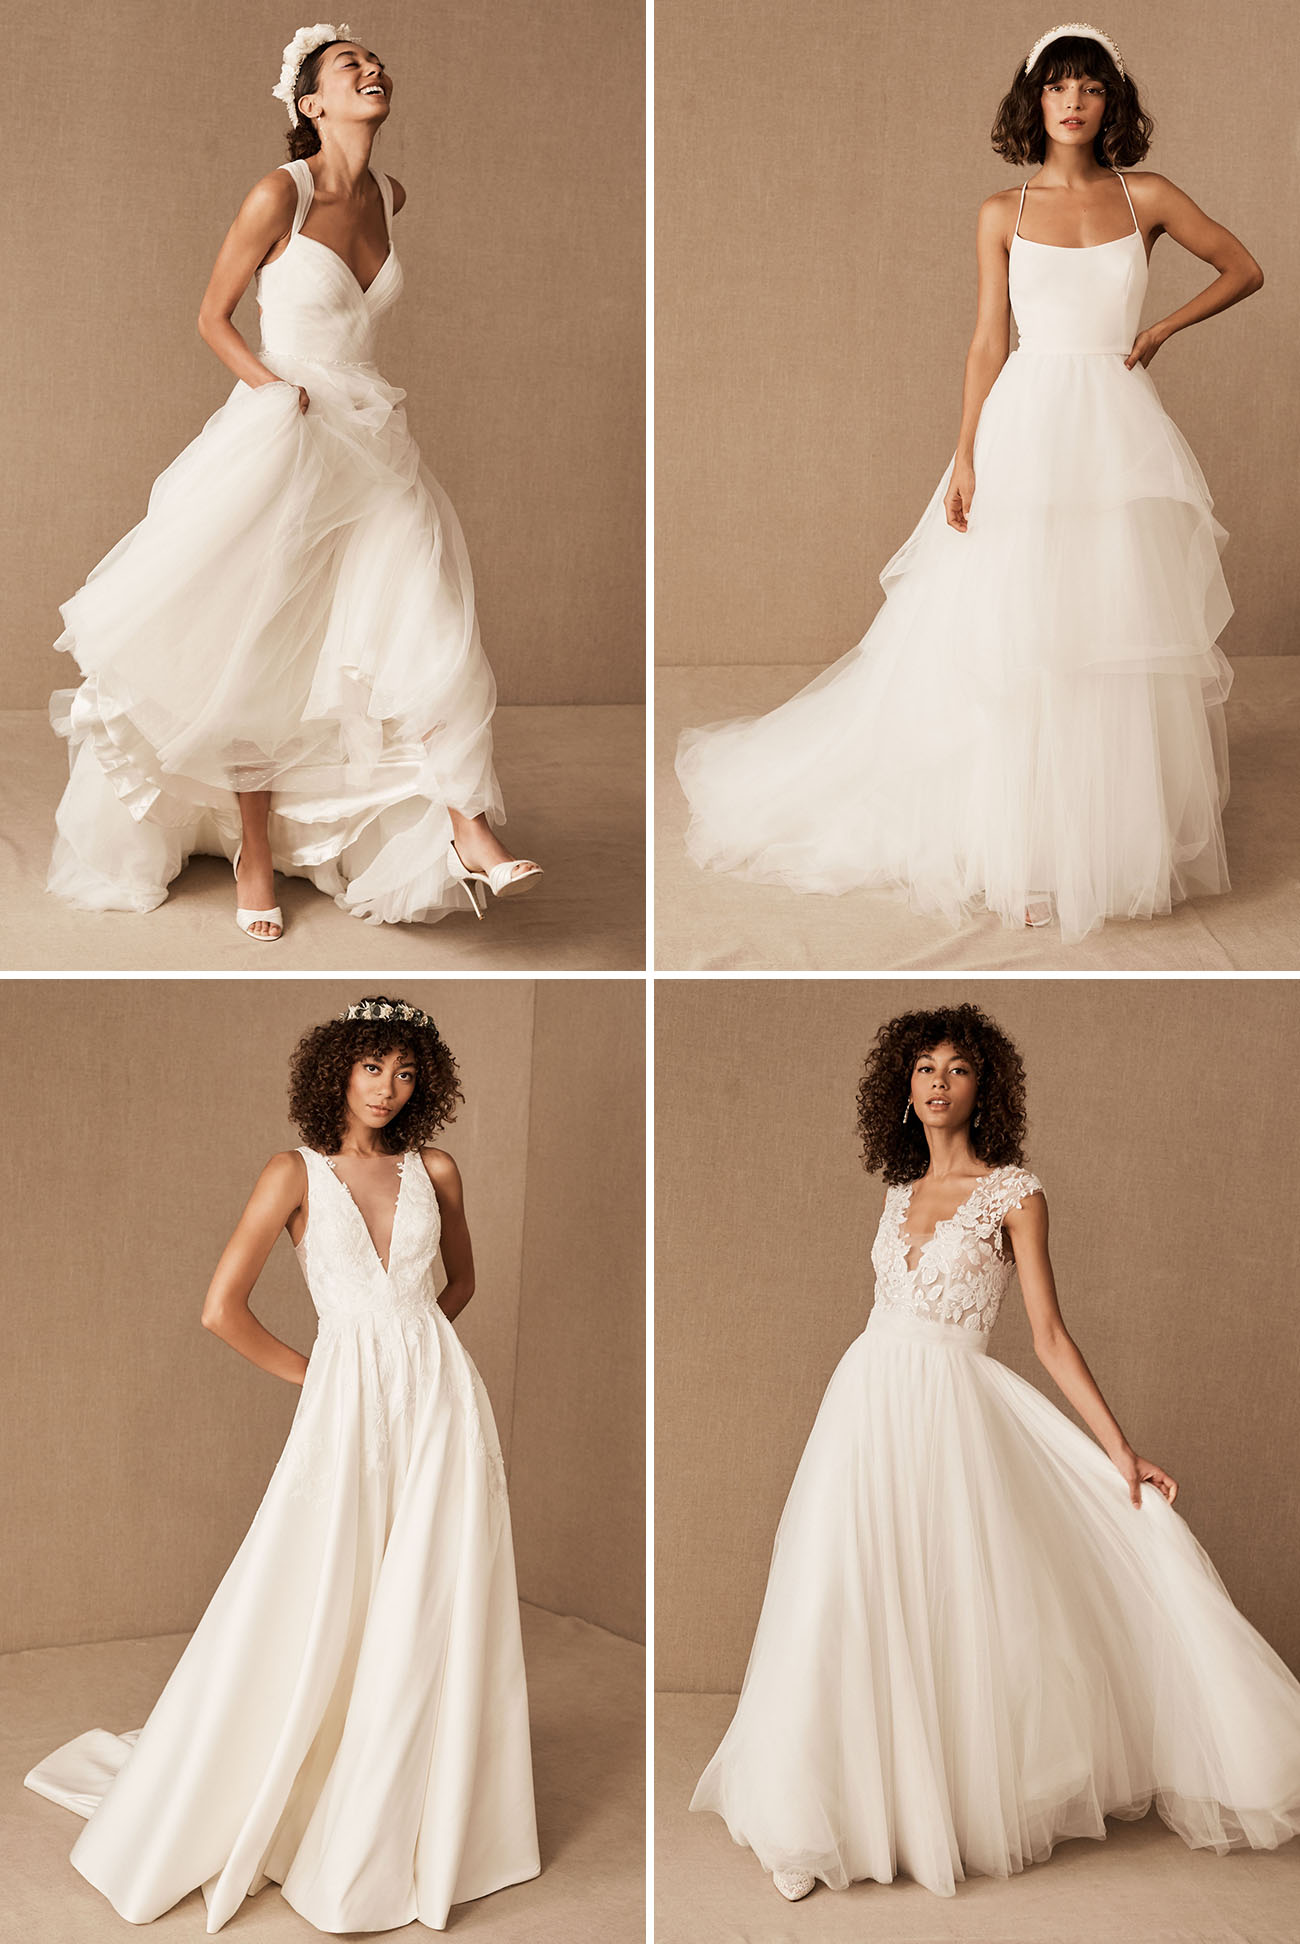 Let's Play Matchmaker! The Best BHLDN Gown For Your Dream Wedding Venue - Green Wedding Shoes